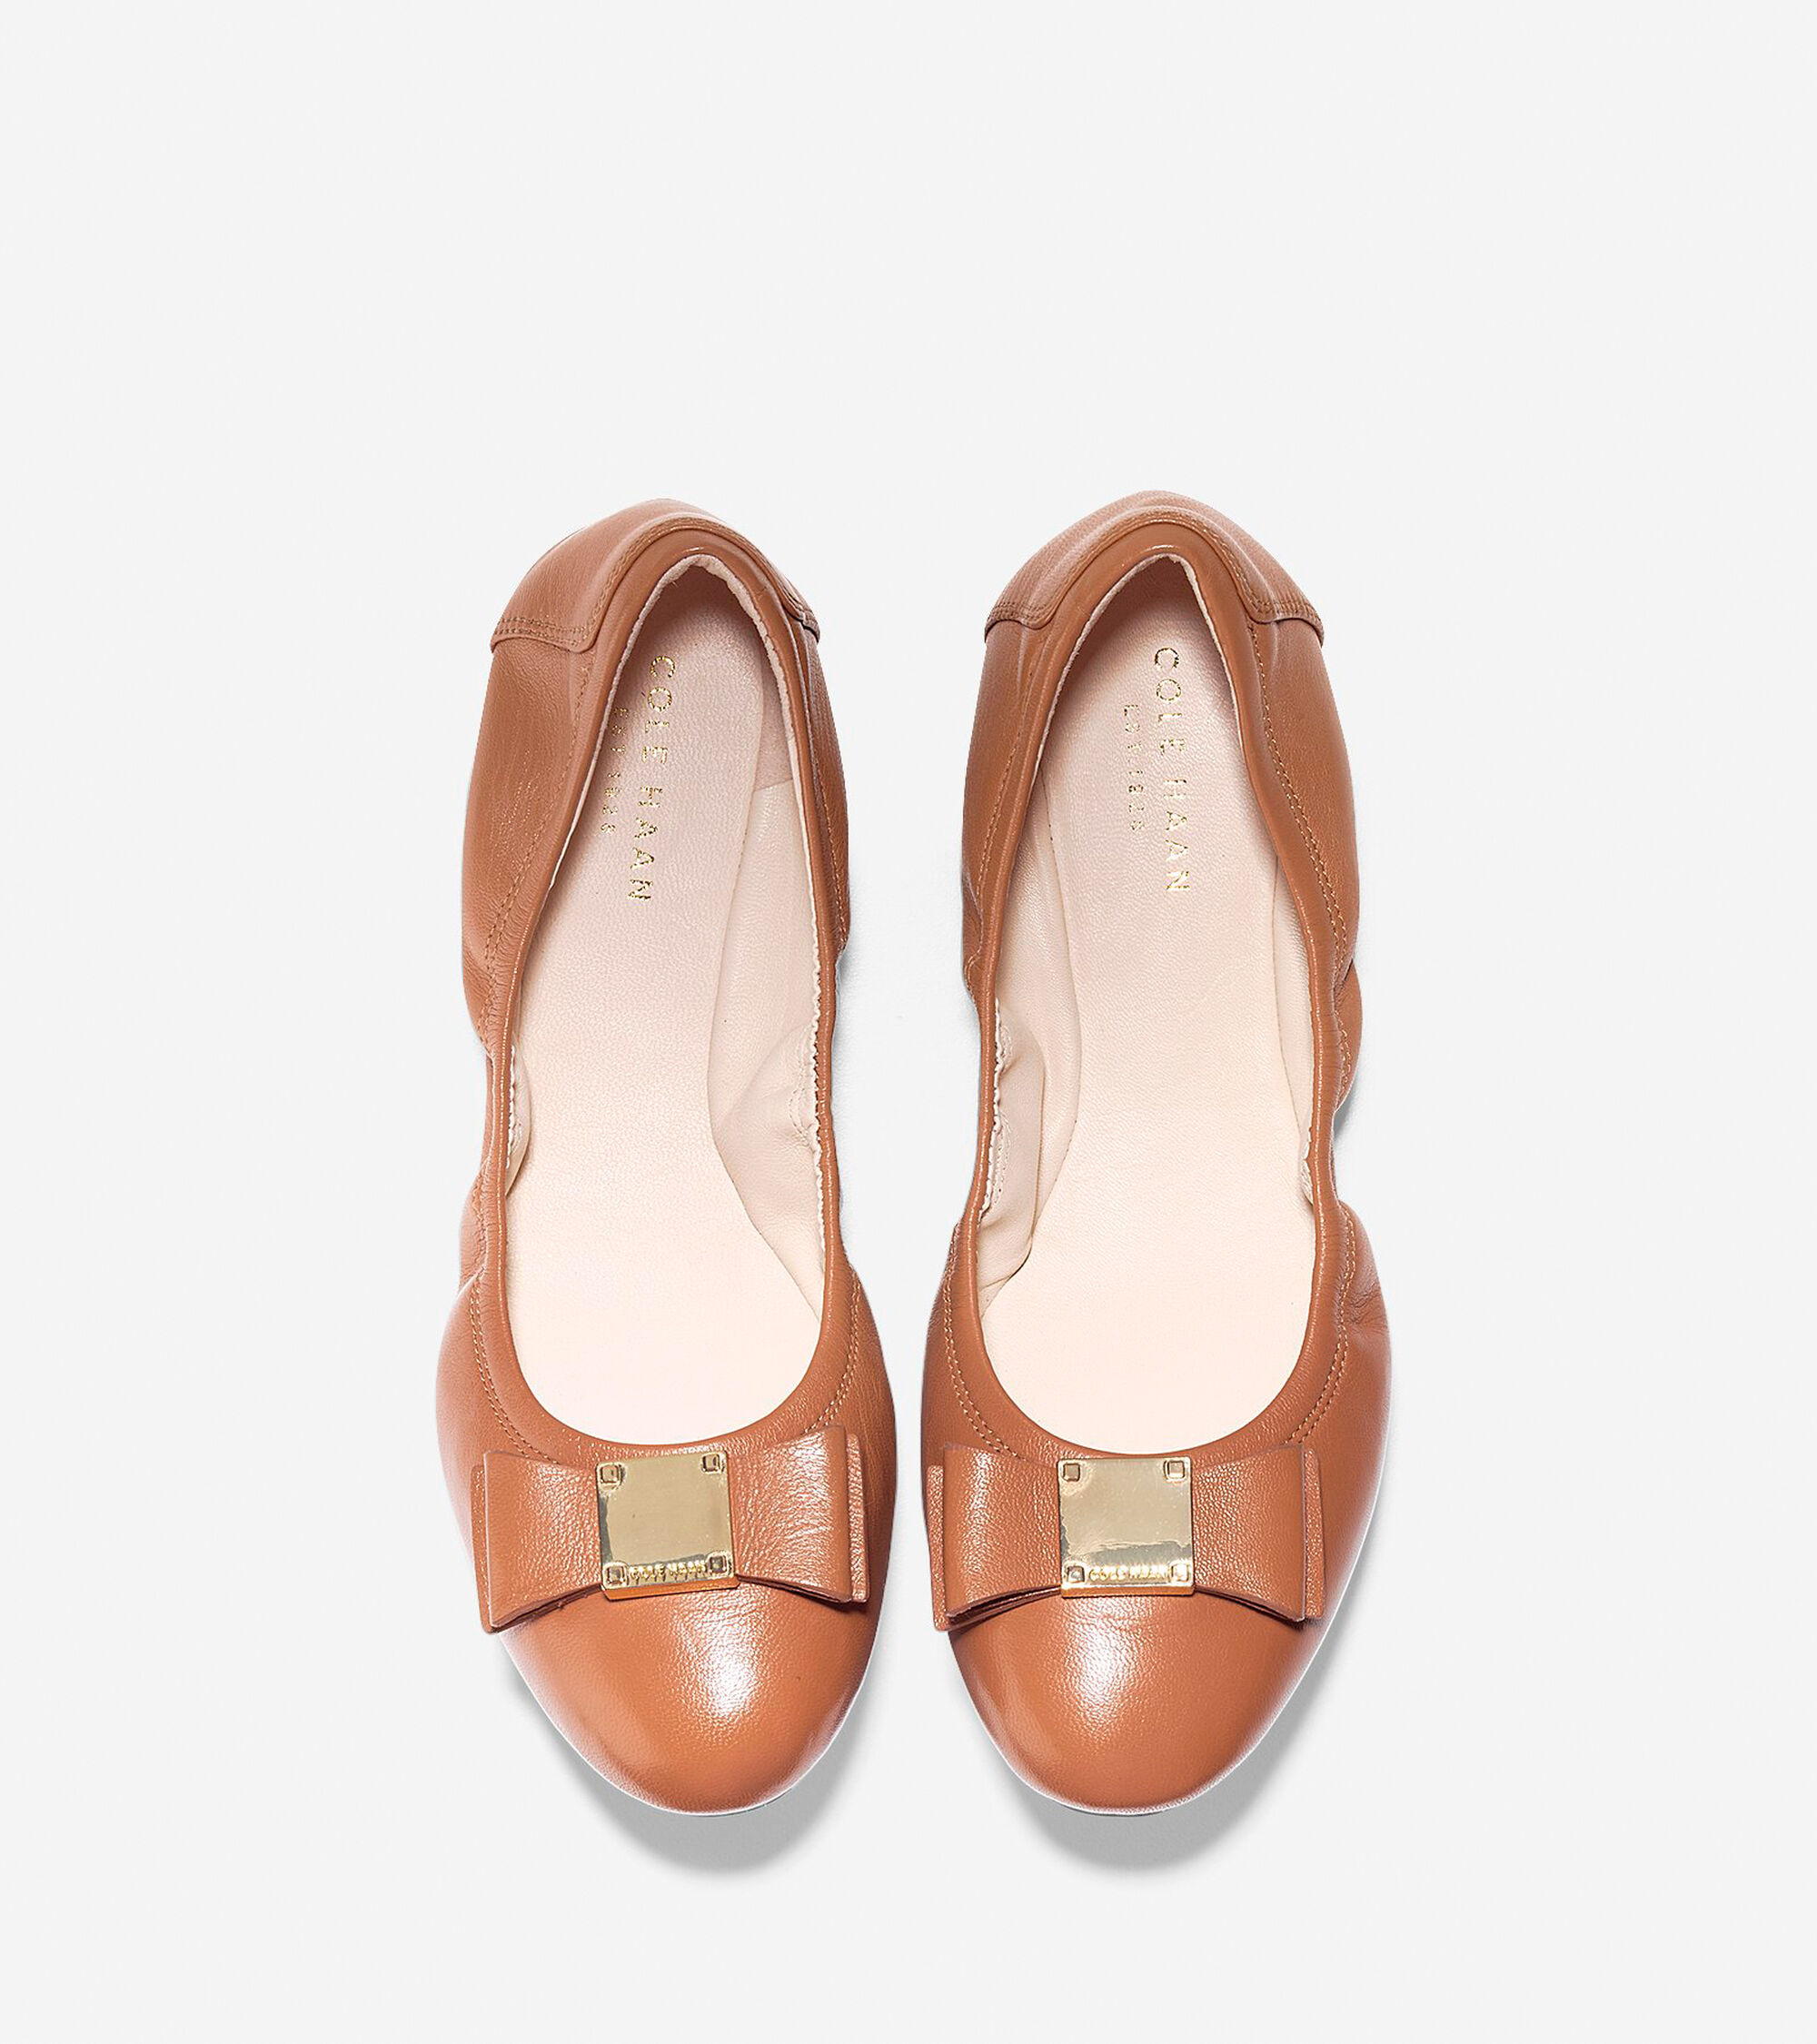 Ballet flats design with bow decorated, Simple, Elegant and Fashionable. Womens Flats Jersey Soft and Faux Vegan Leather Comfortable Basic Canvas Slip On Ballet Shoes Dress Shoes. by Shop Pretty Girl. $ - $ $ 9 $ 16 69 Prime. FREE Shipping on .